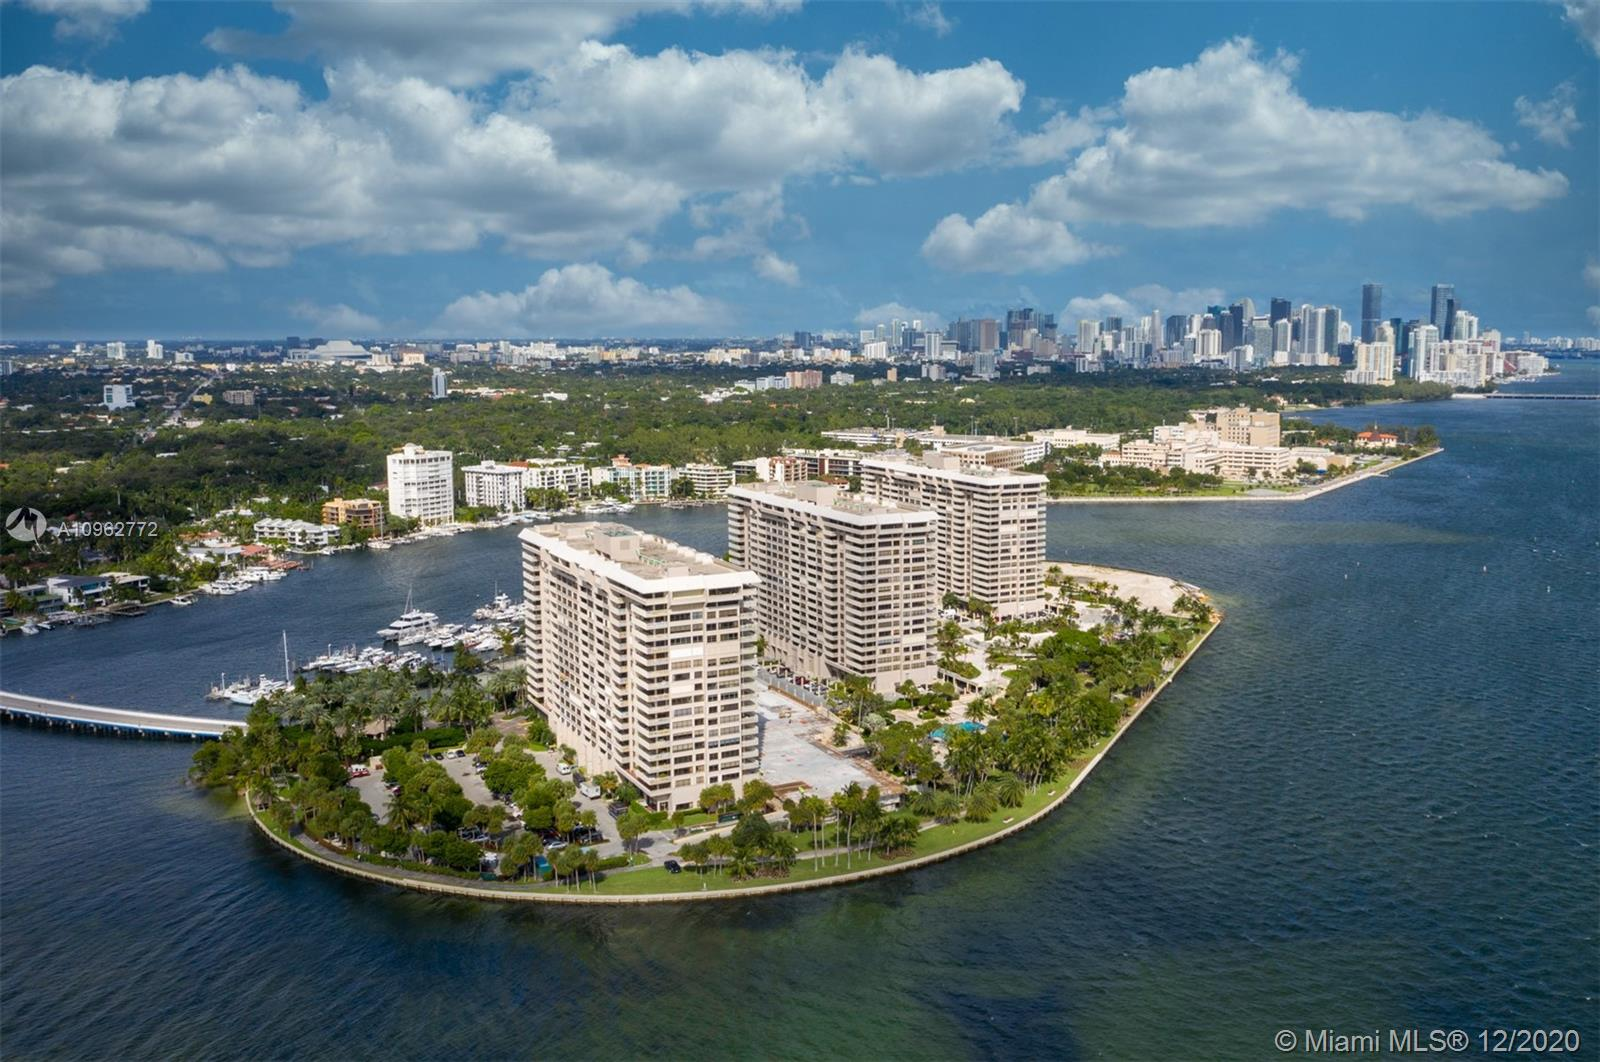 3 Grove Isle Dr # C402, Miami, Florida 33133, 3 Bedrooms Bedrooms, ,2 BathroomsBathrooms,Residential,For Sale,3 Grove Isle Dr # C402,A10962772